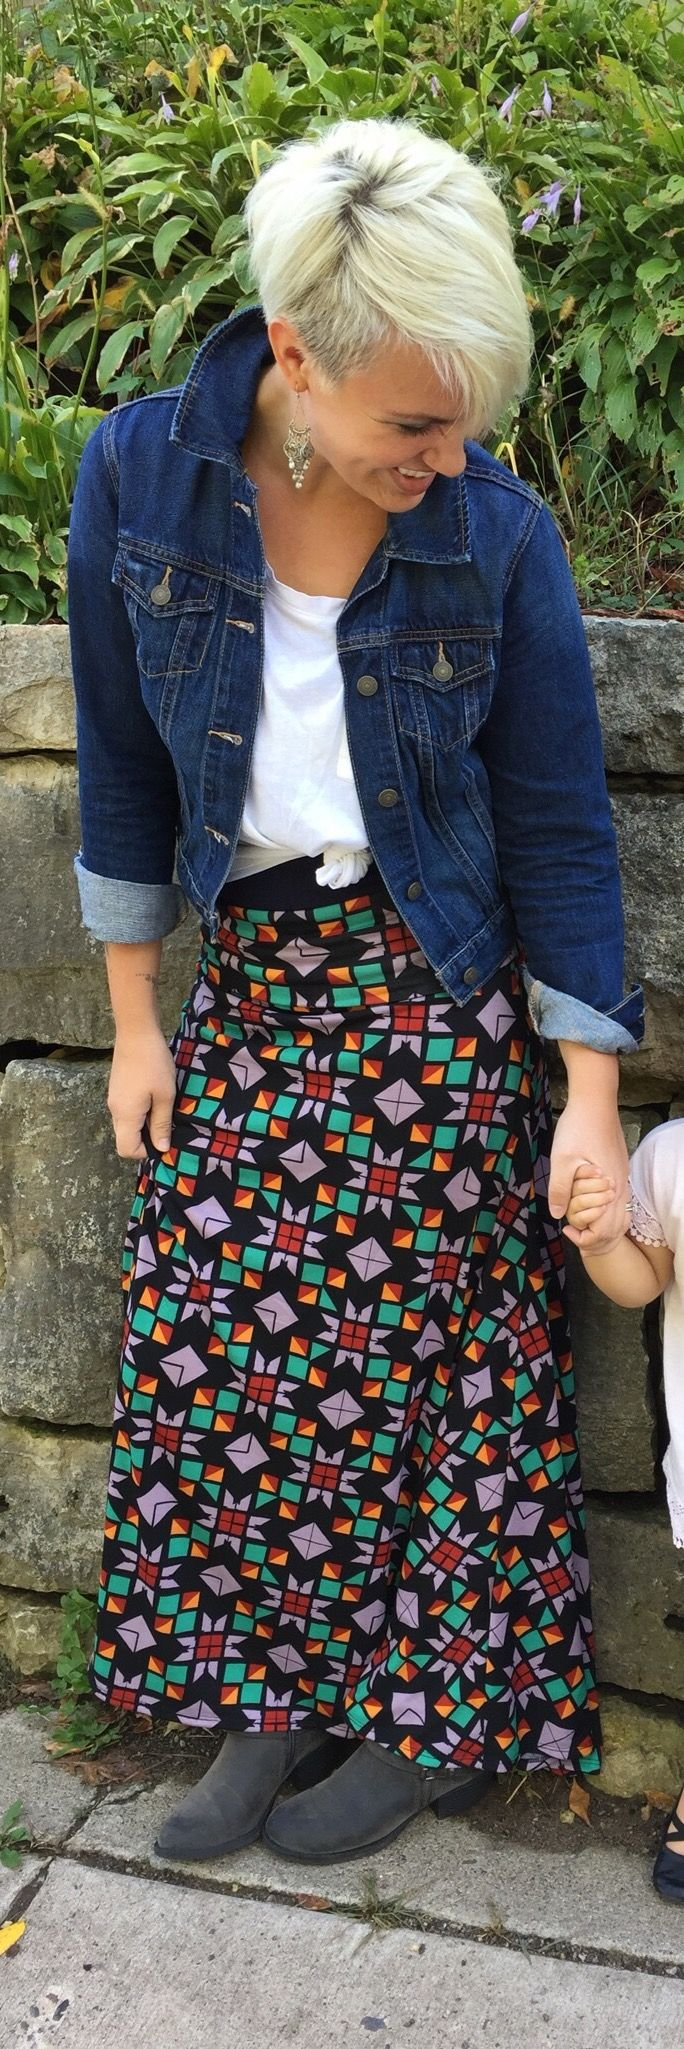 LuLaRoe Maxi skirt with knotted t and jean jacket. Join our Facebook group for fun ways to create outfits and opportunities to purchase styles like this one. https://www.facebook.com/groups/LuLaRoeLiliesShoppe